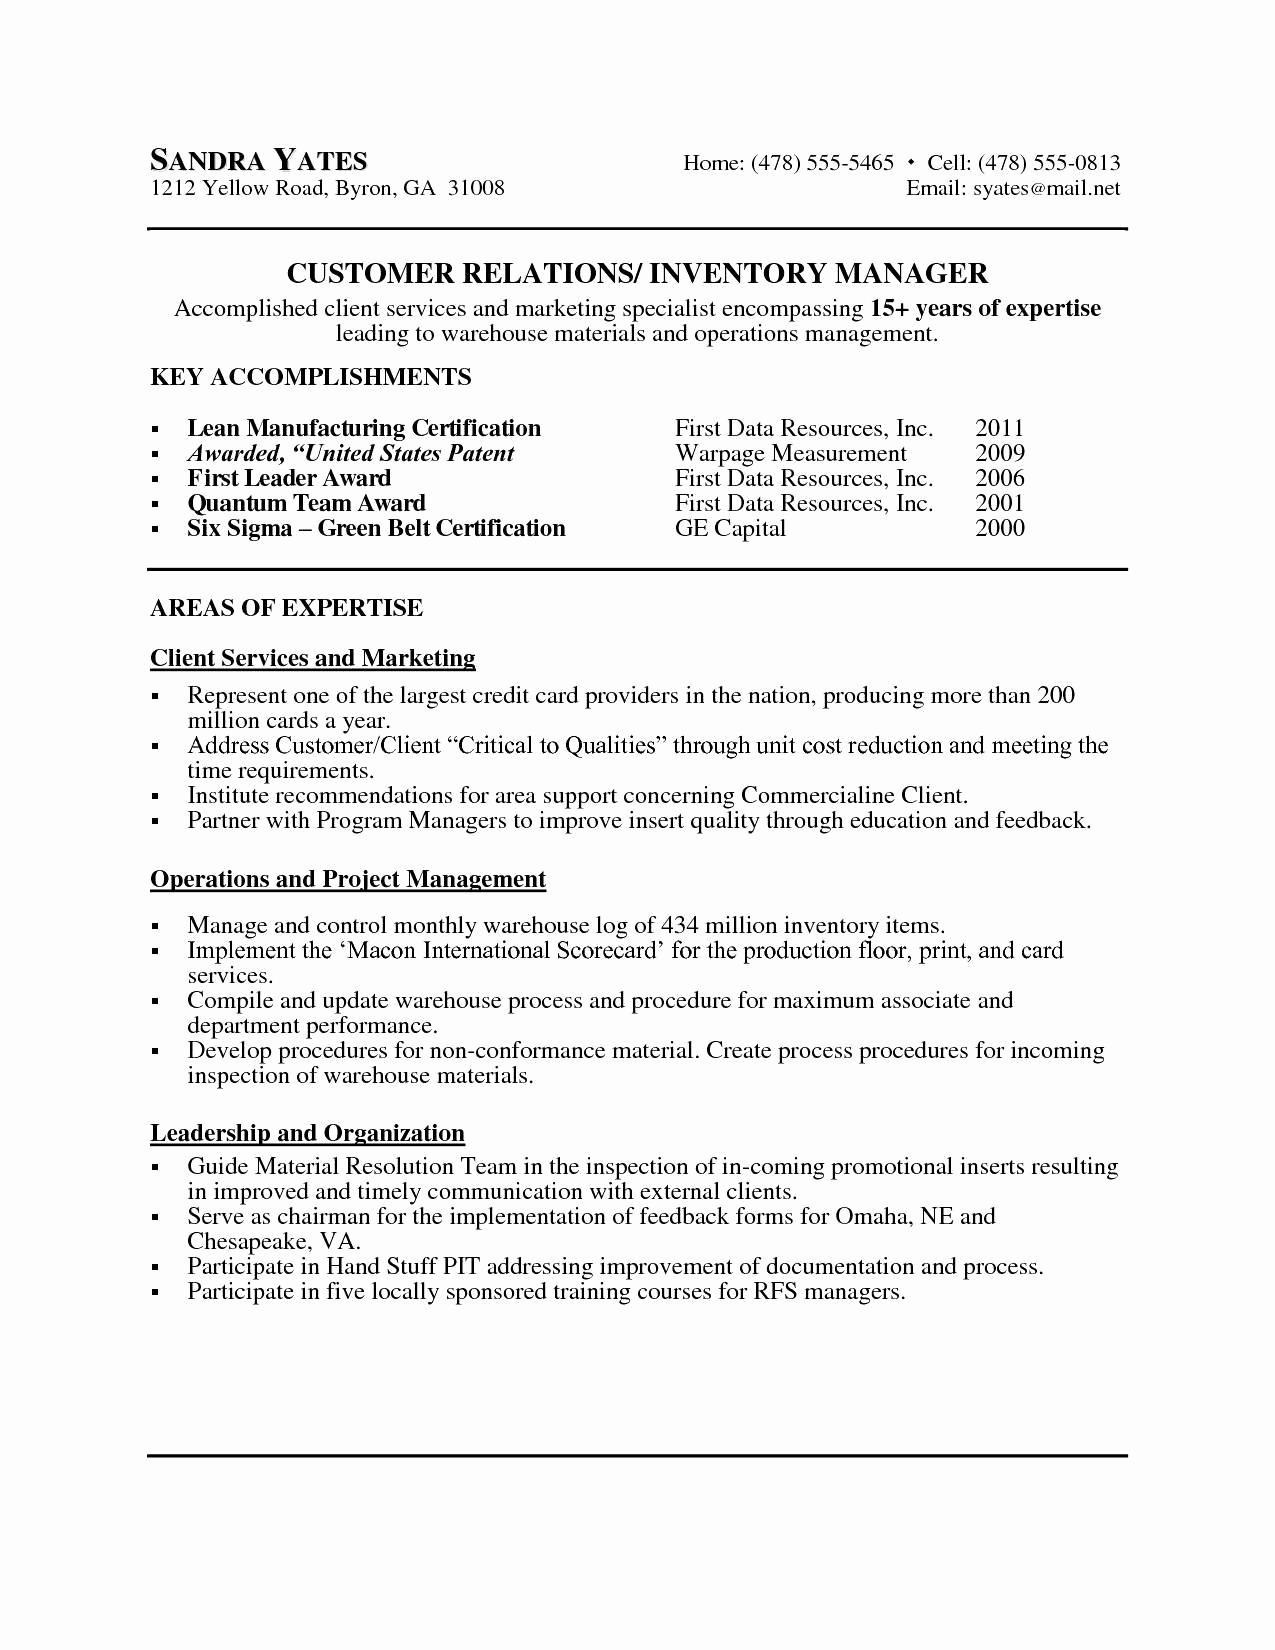 Film Resume Template - Resume Template Best Ressume Template Lovely Type Resume